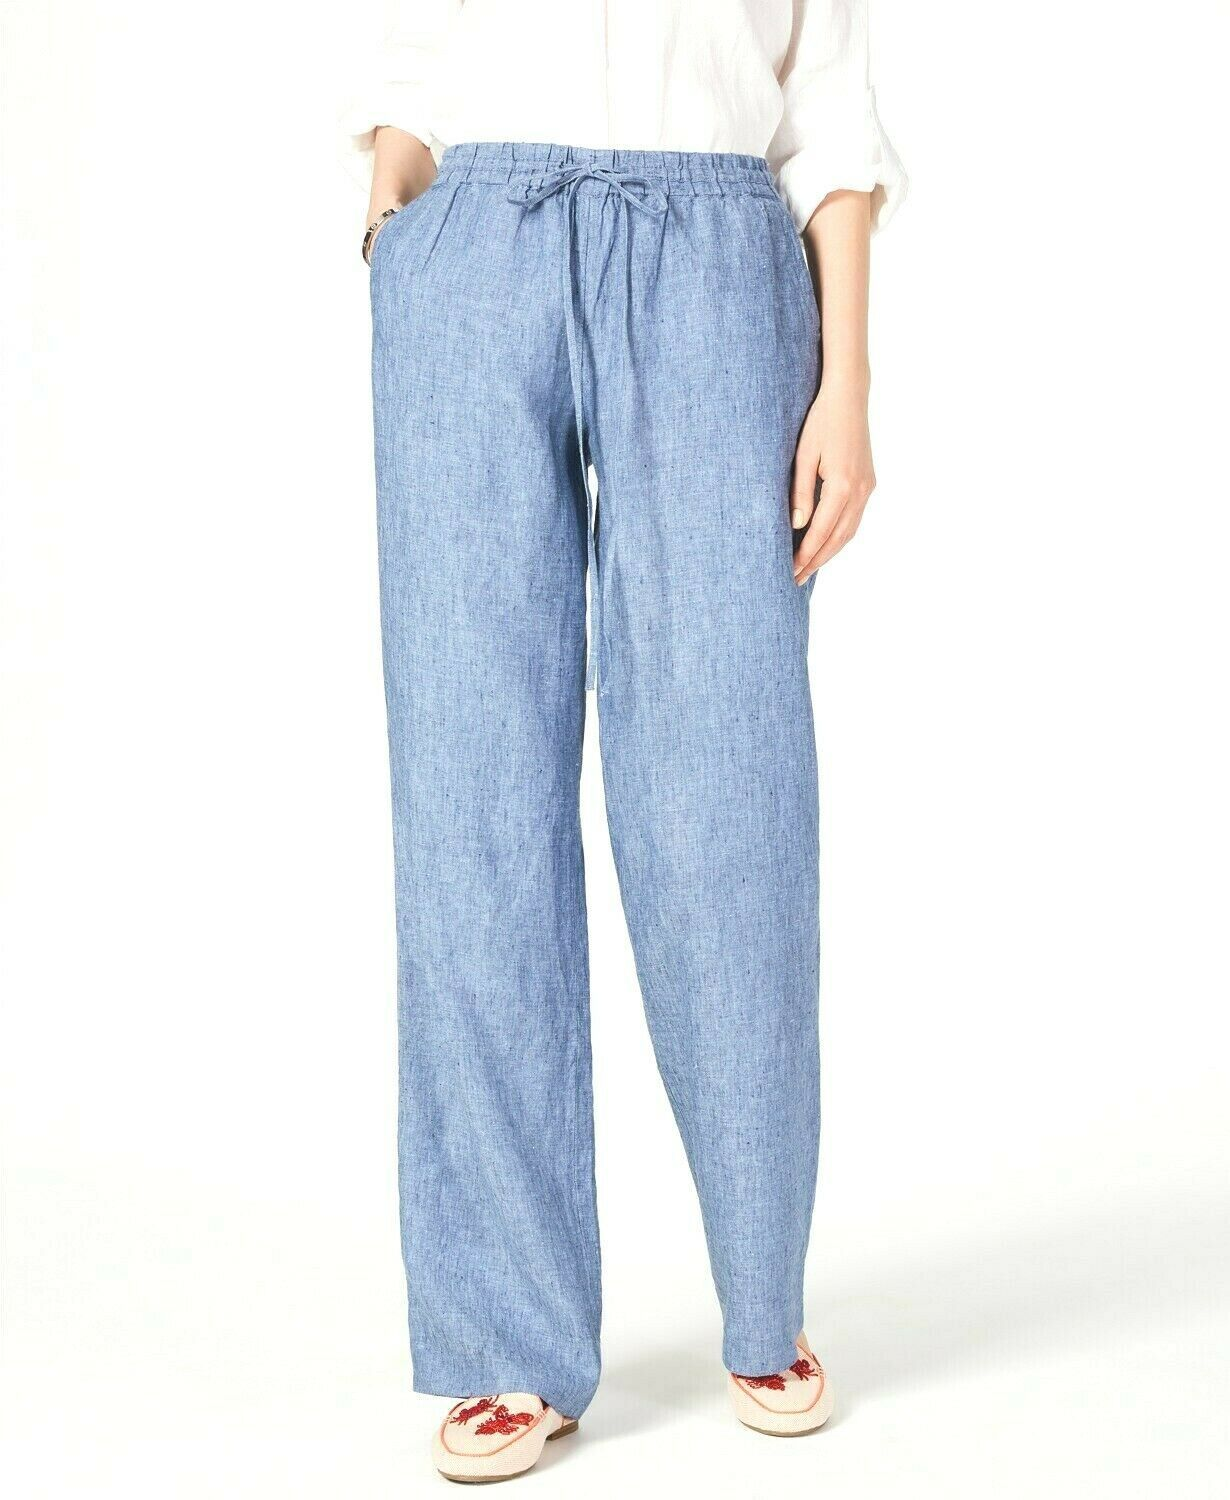 Primary image for Charter Club NEW Women's Linen Drawstring-Waist Pants Blue Ocean $69 Size XS & S